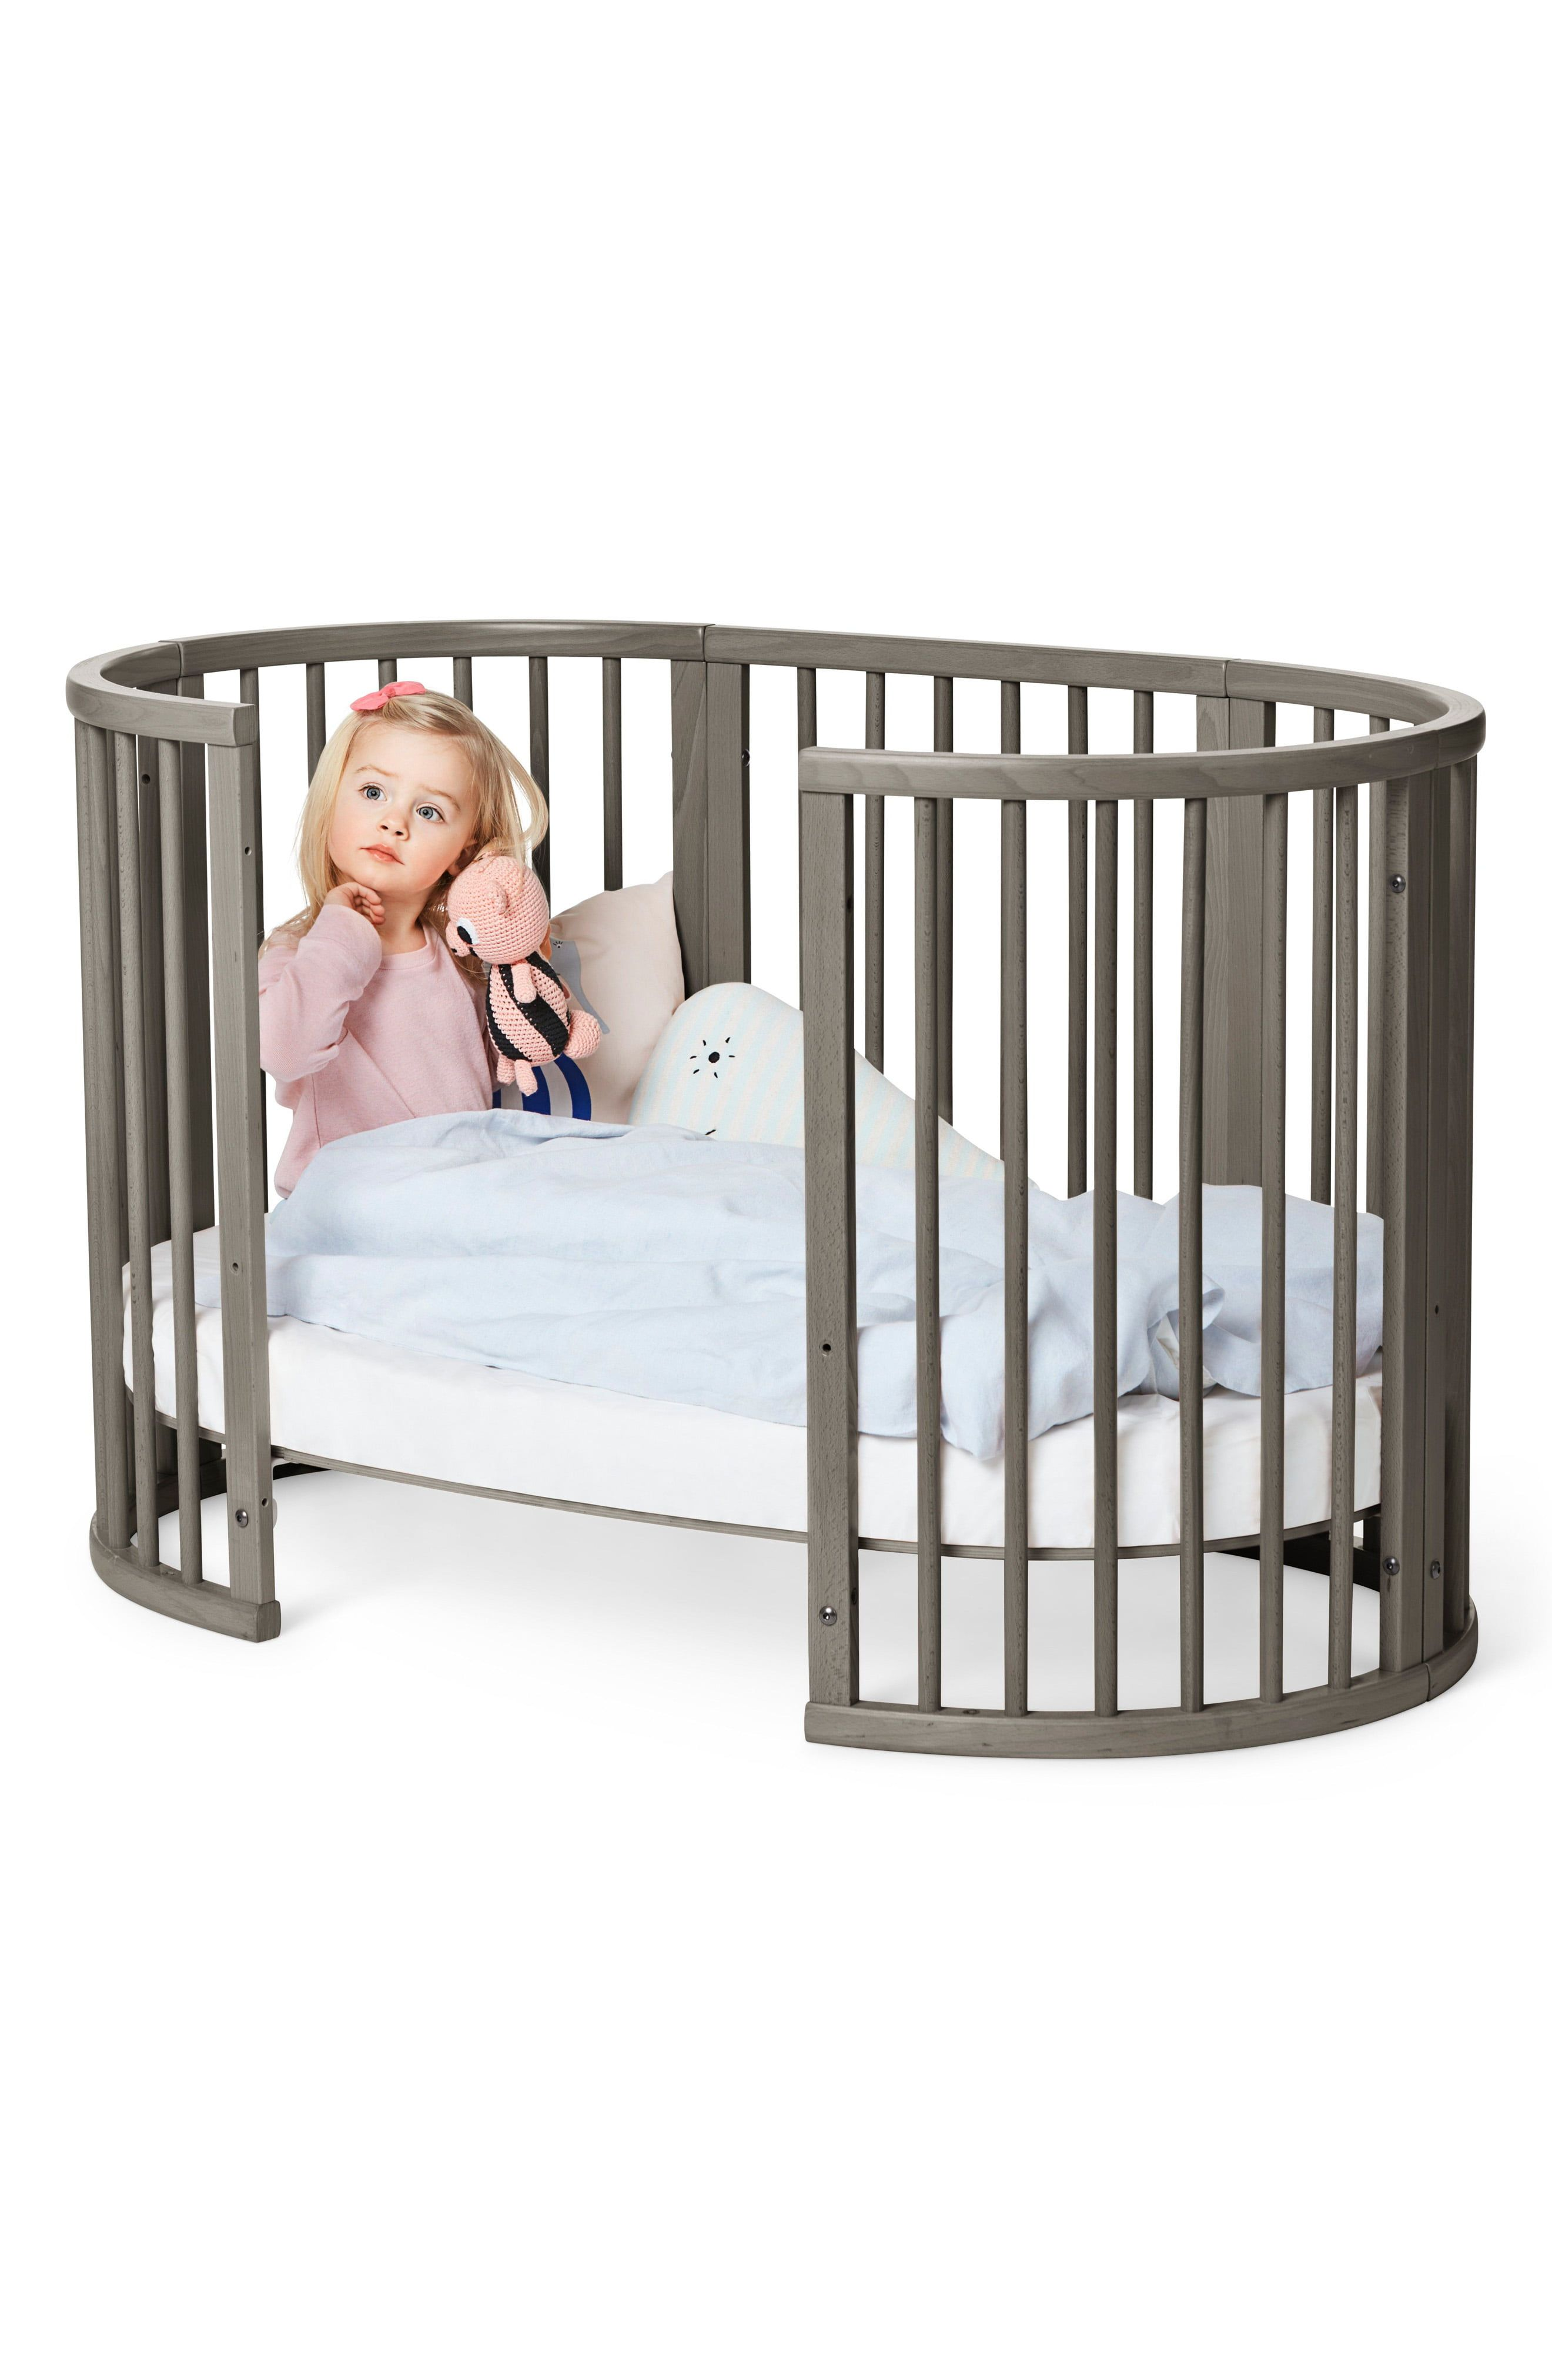 mini crib toddler bed on stokke convertible sleepi crib toddler bed nordstrom crib toddler bed toddler bed cribs pinterest